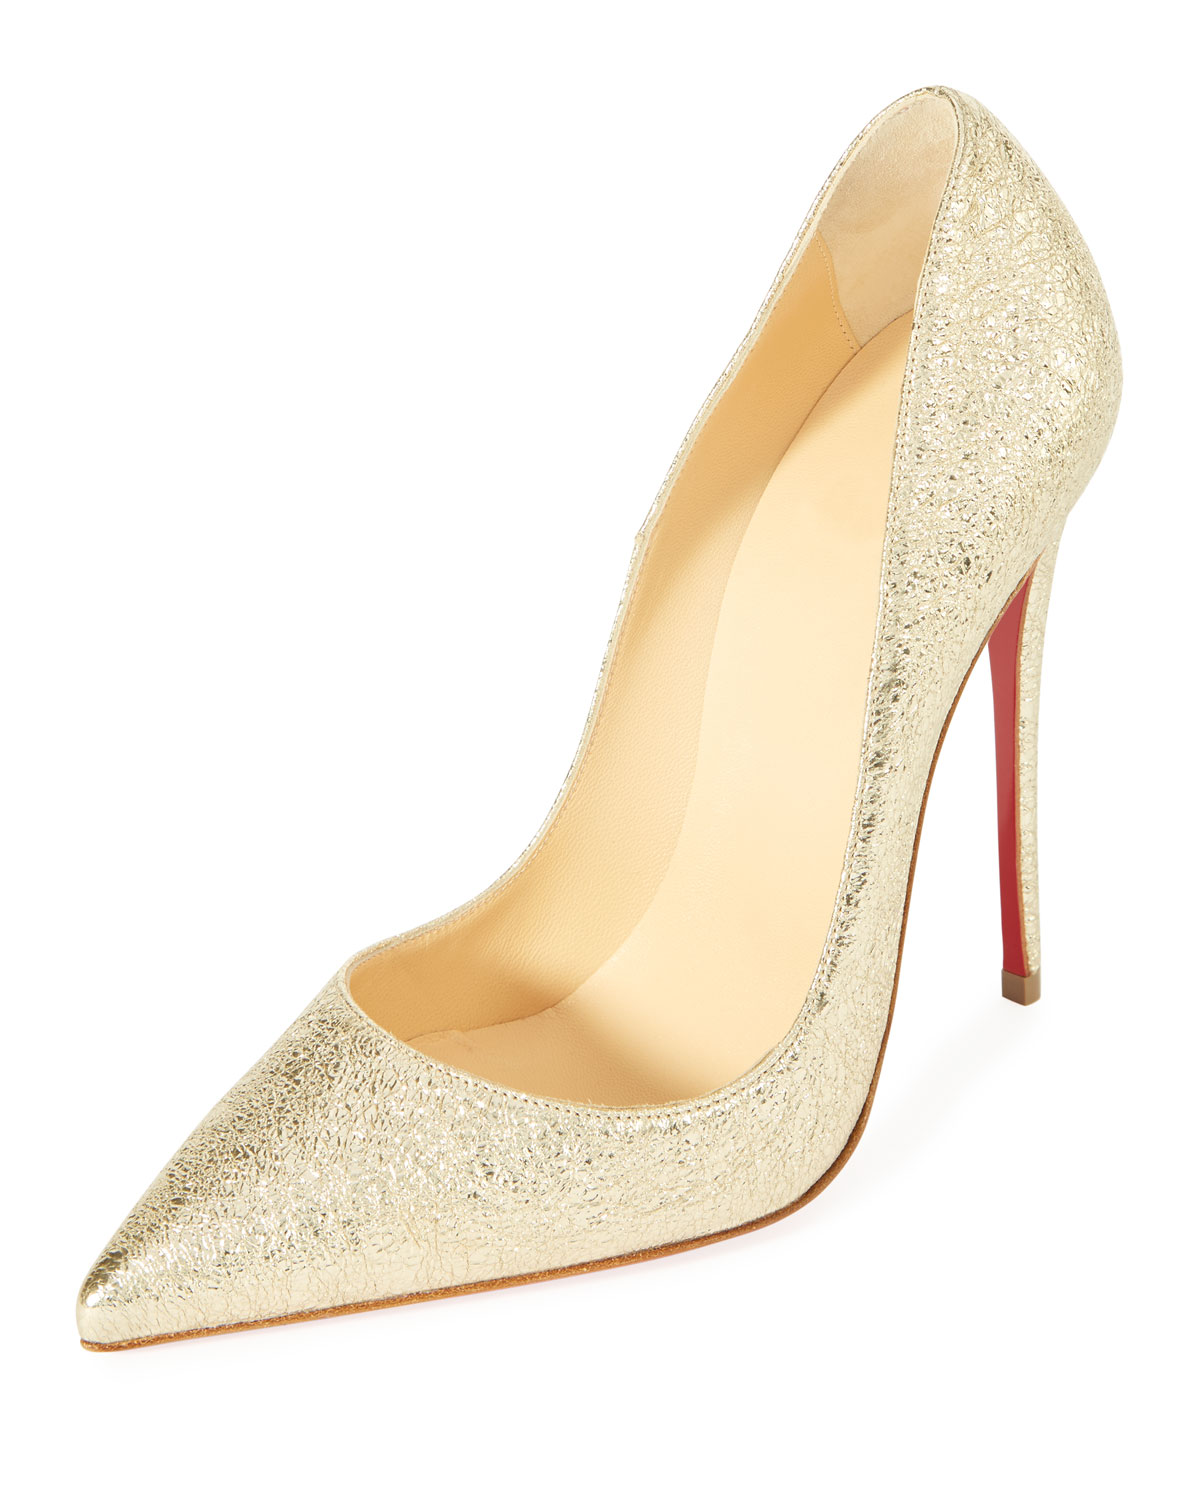 1763bc2d442a Christian Louboutin So Kate 120mm Metallic Red Sole Pumps